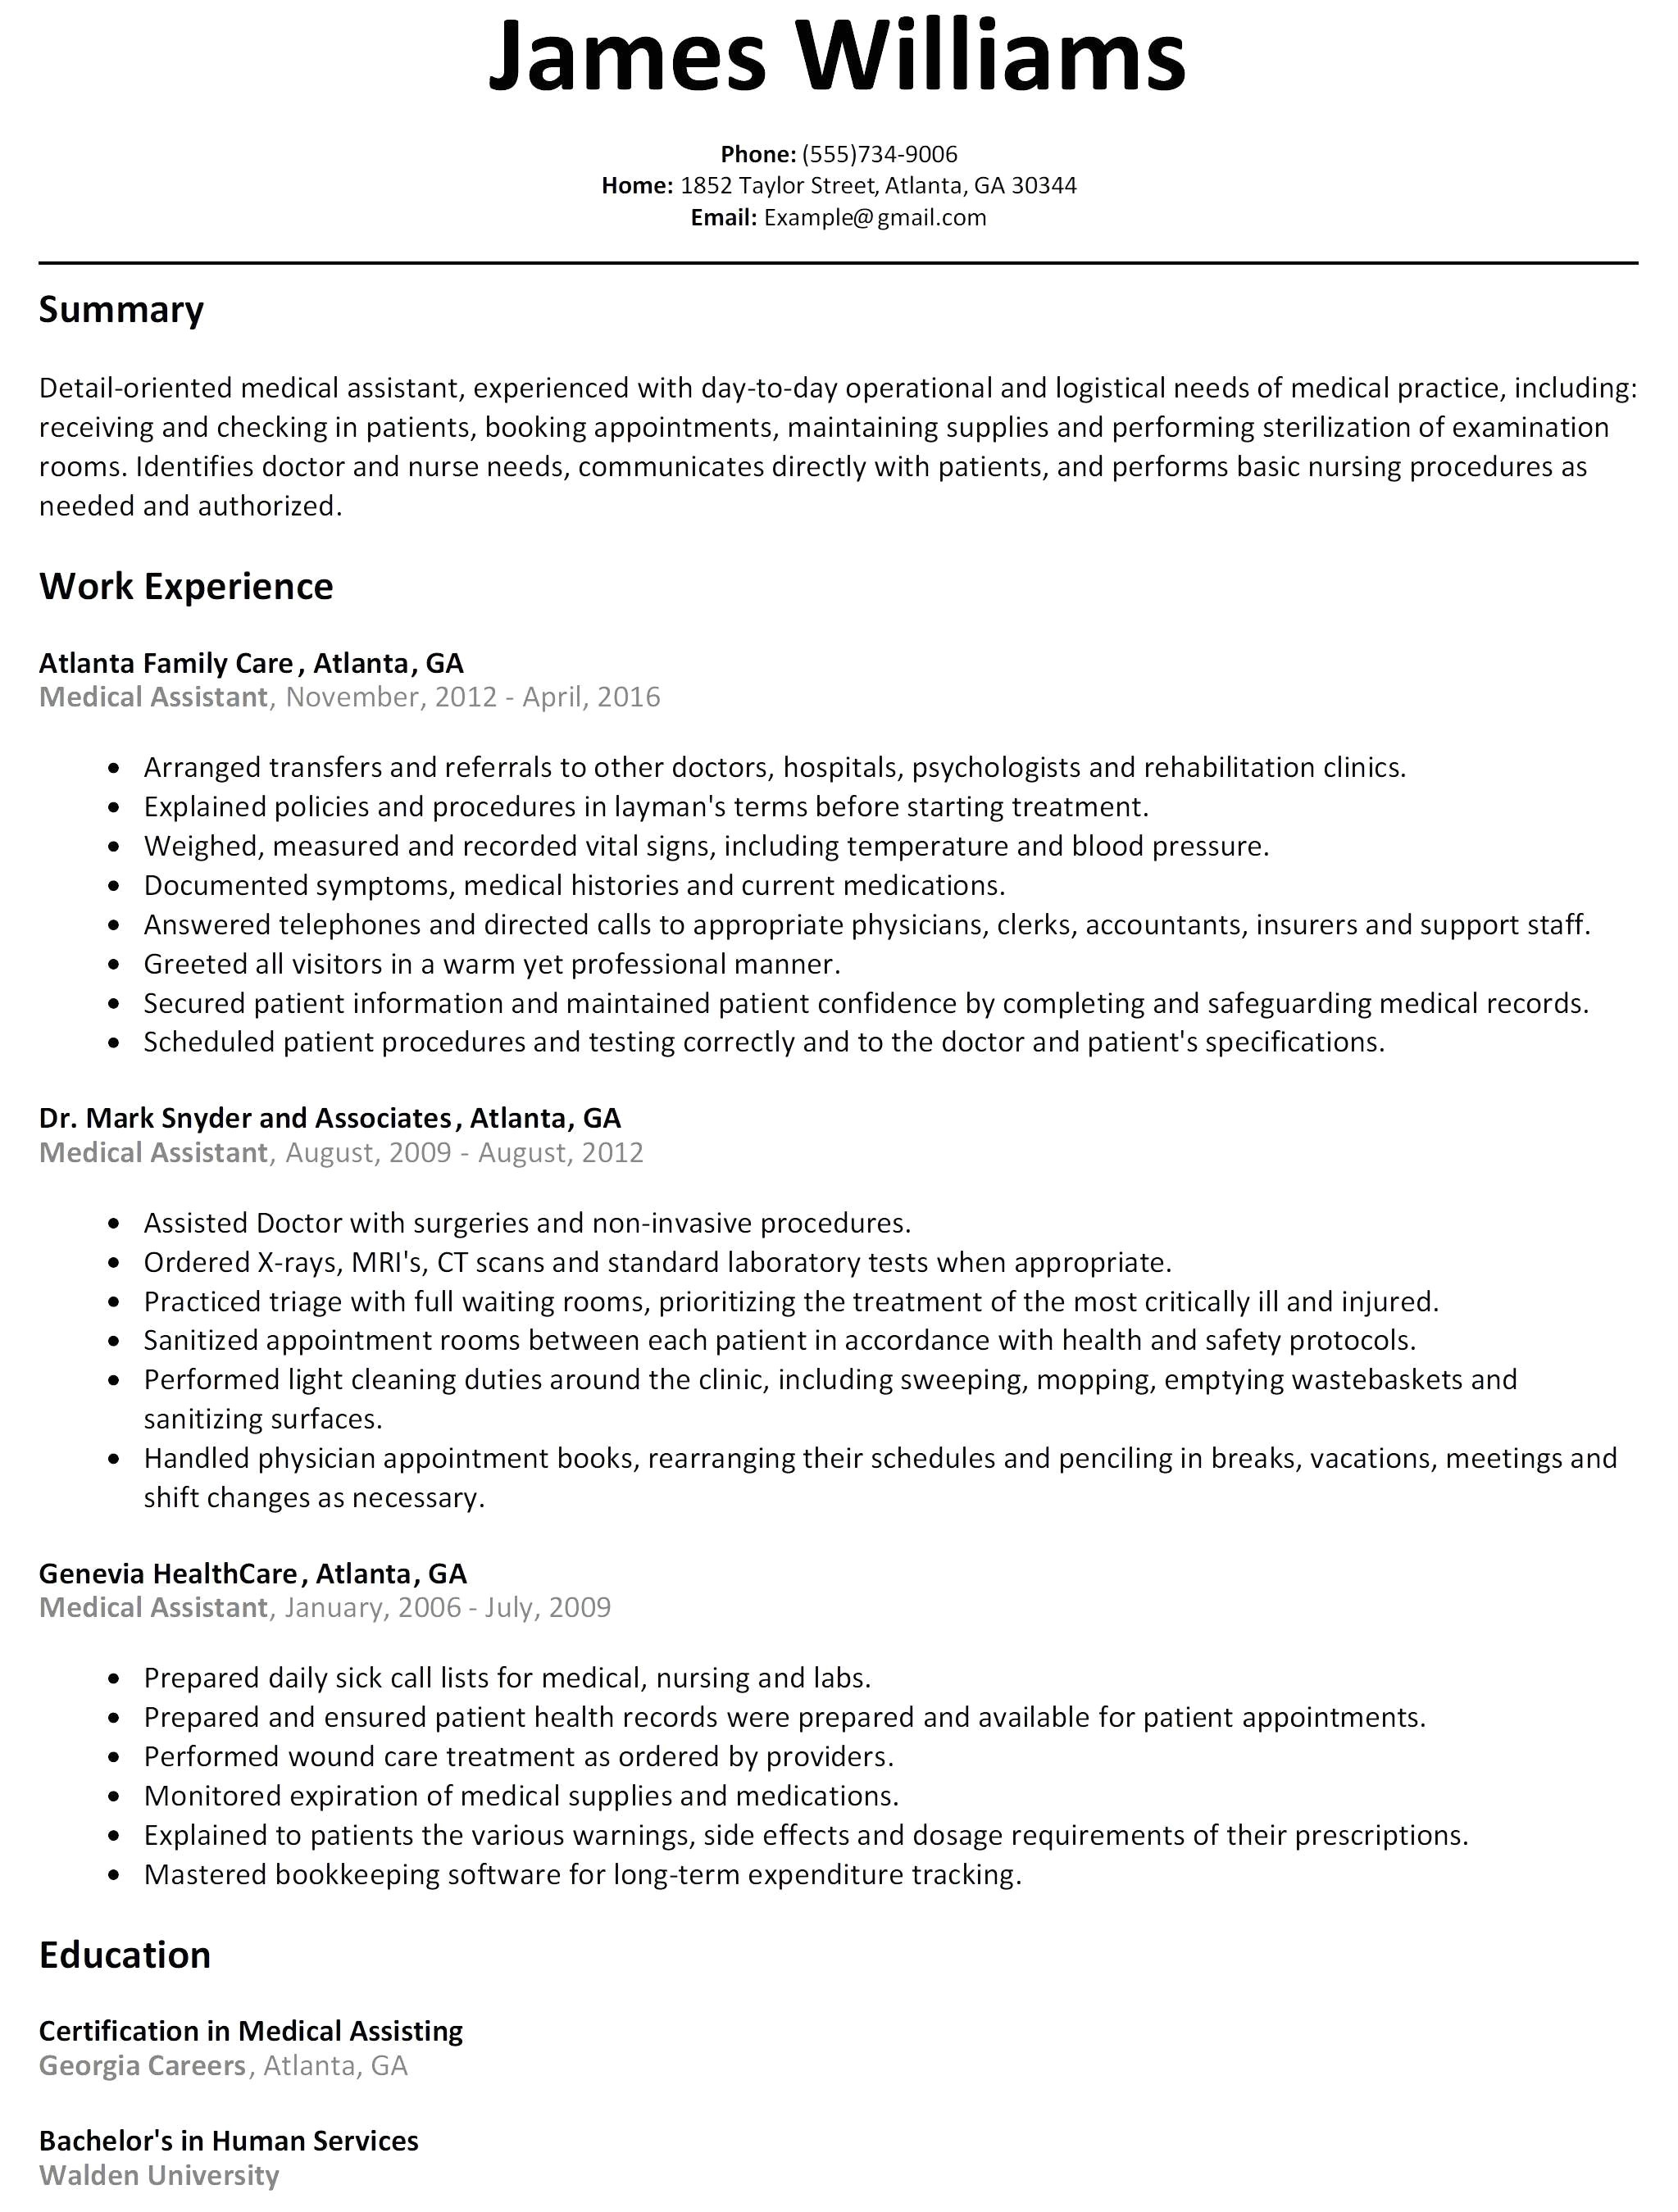 Glassdoor Resume Critique - Best Resume Example Ideas Part 44